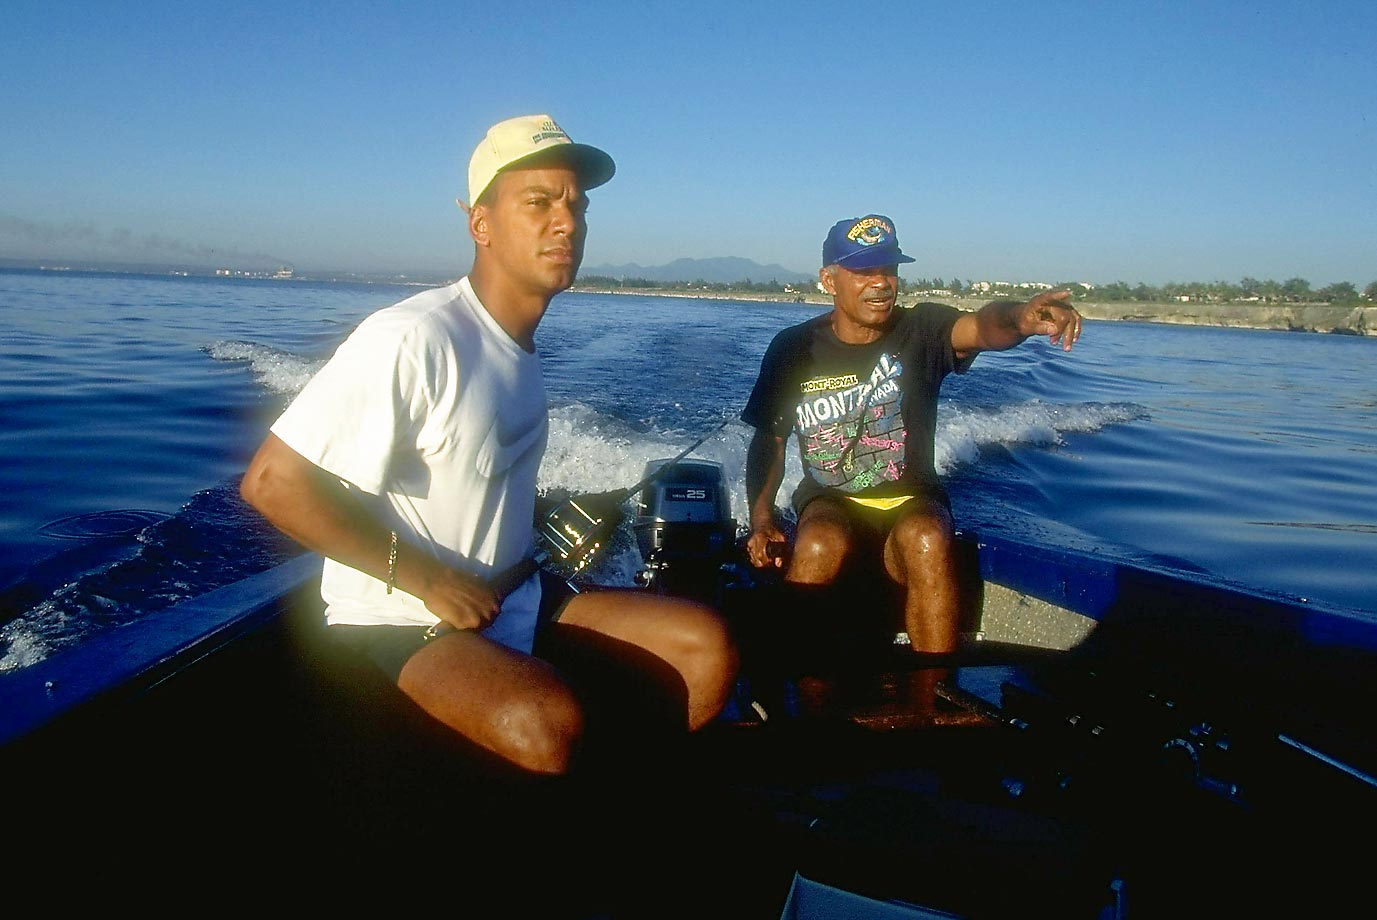 Expos manager Felipe and his son Moises, an outfielder, sit on a fishing boat in the off-season of what-could-have-beens. Montreal had a league-best record of 74-40 when a strike cut off the season without a World Series in 1994.